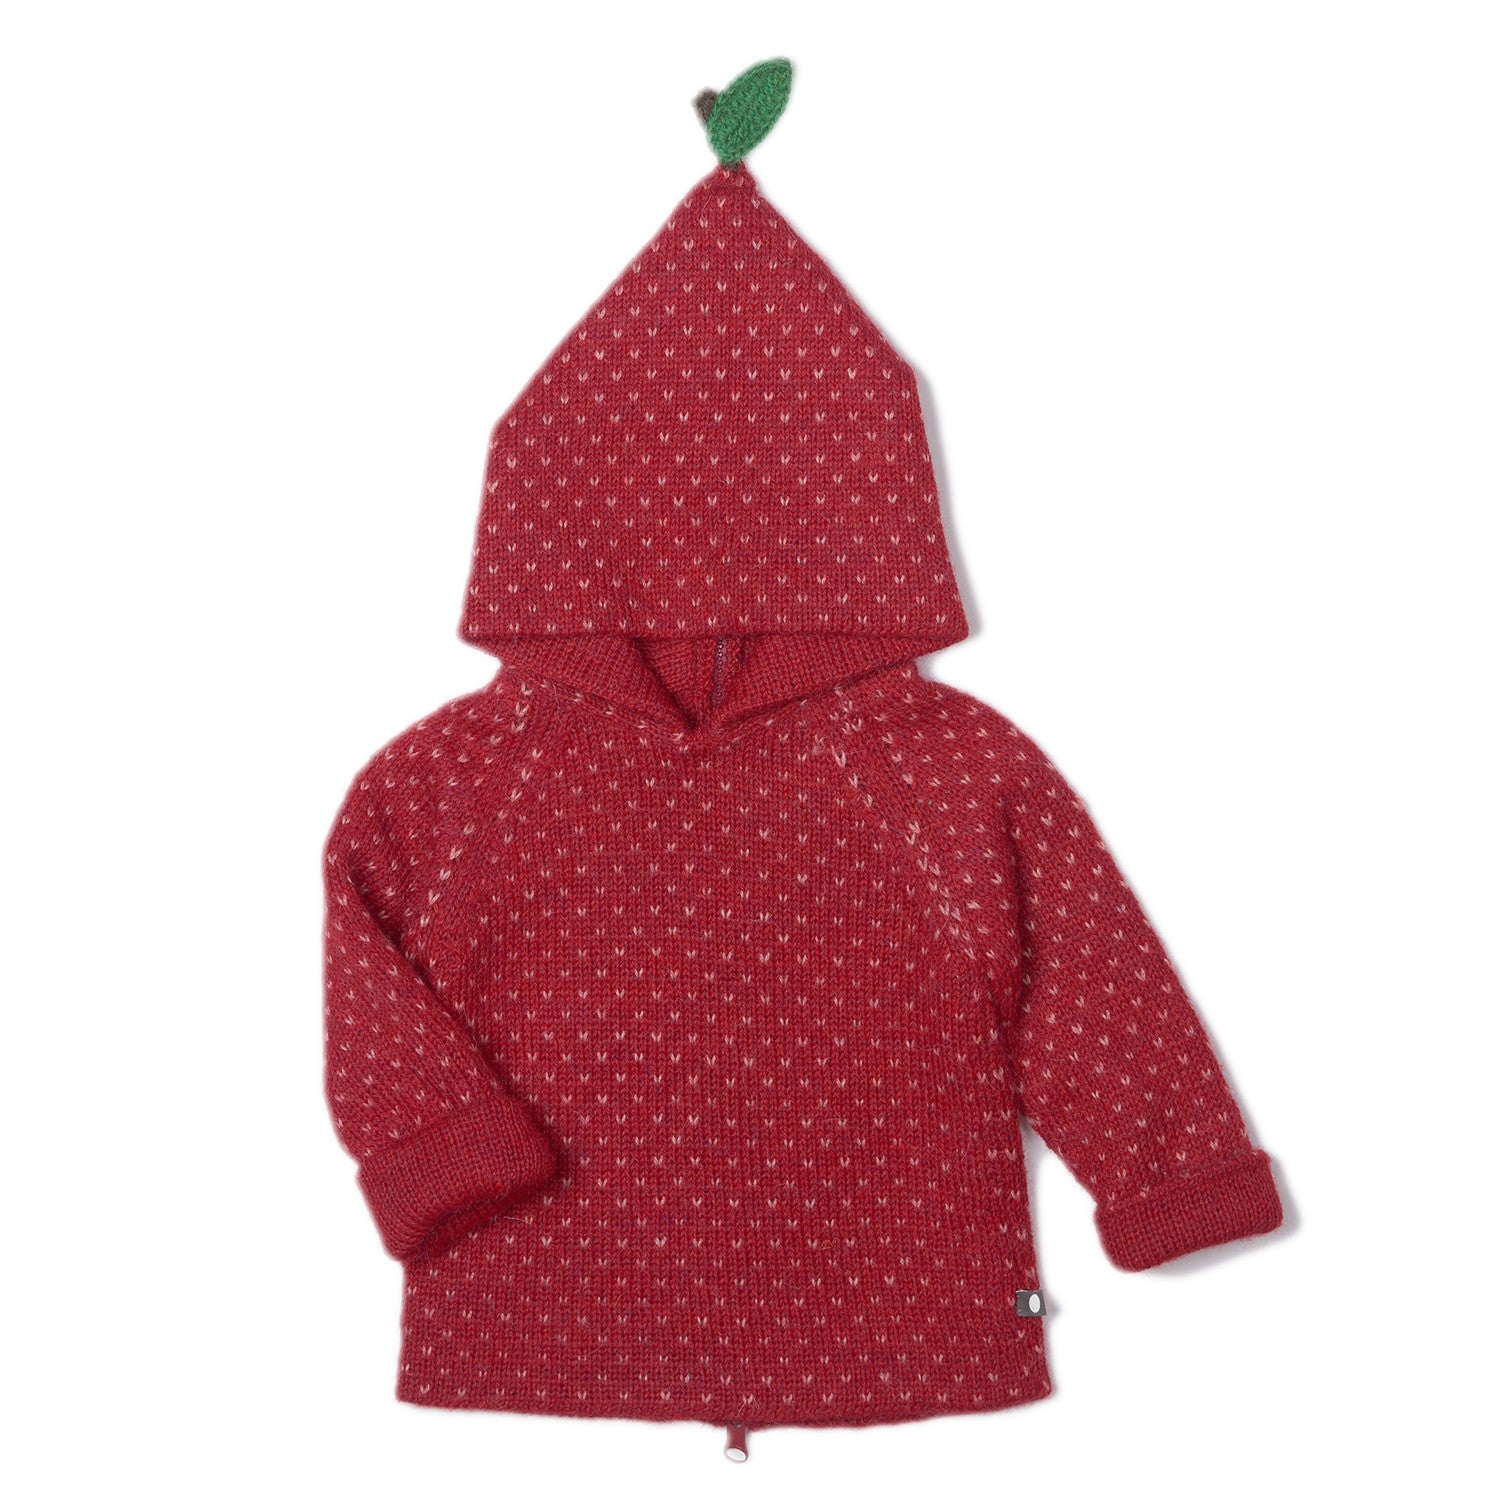 OEUF - Apple Hoodie / Red